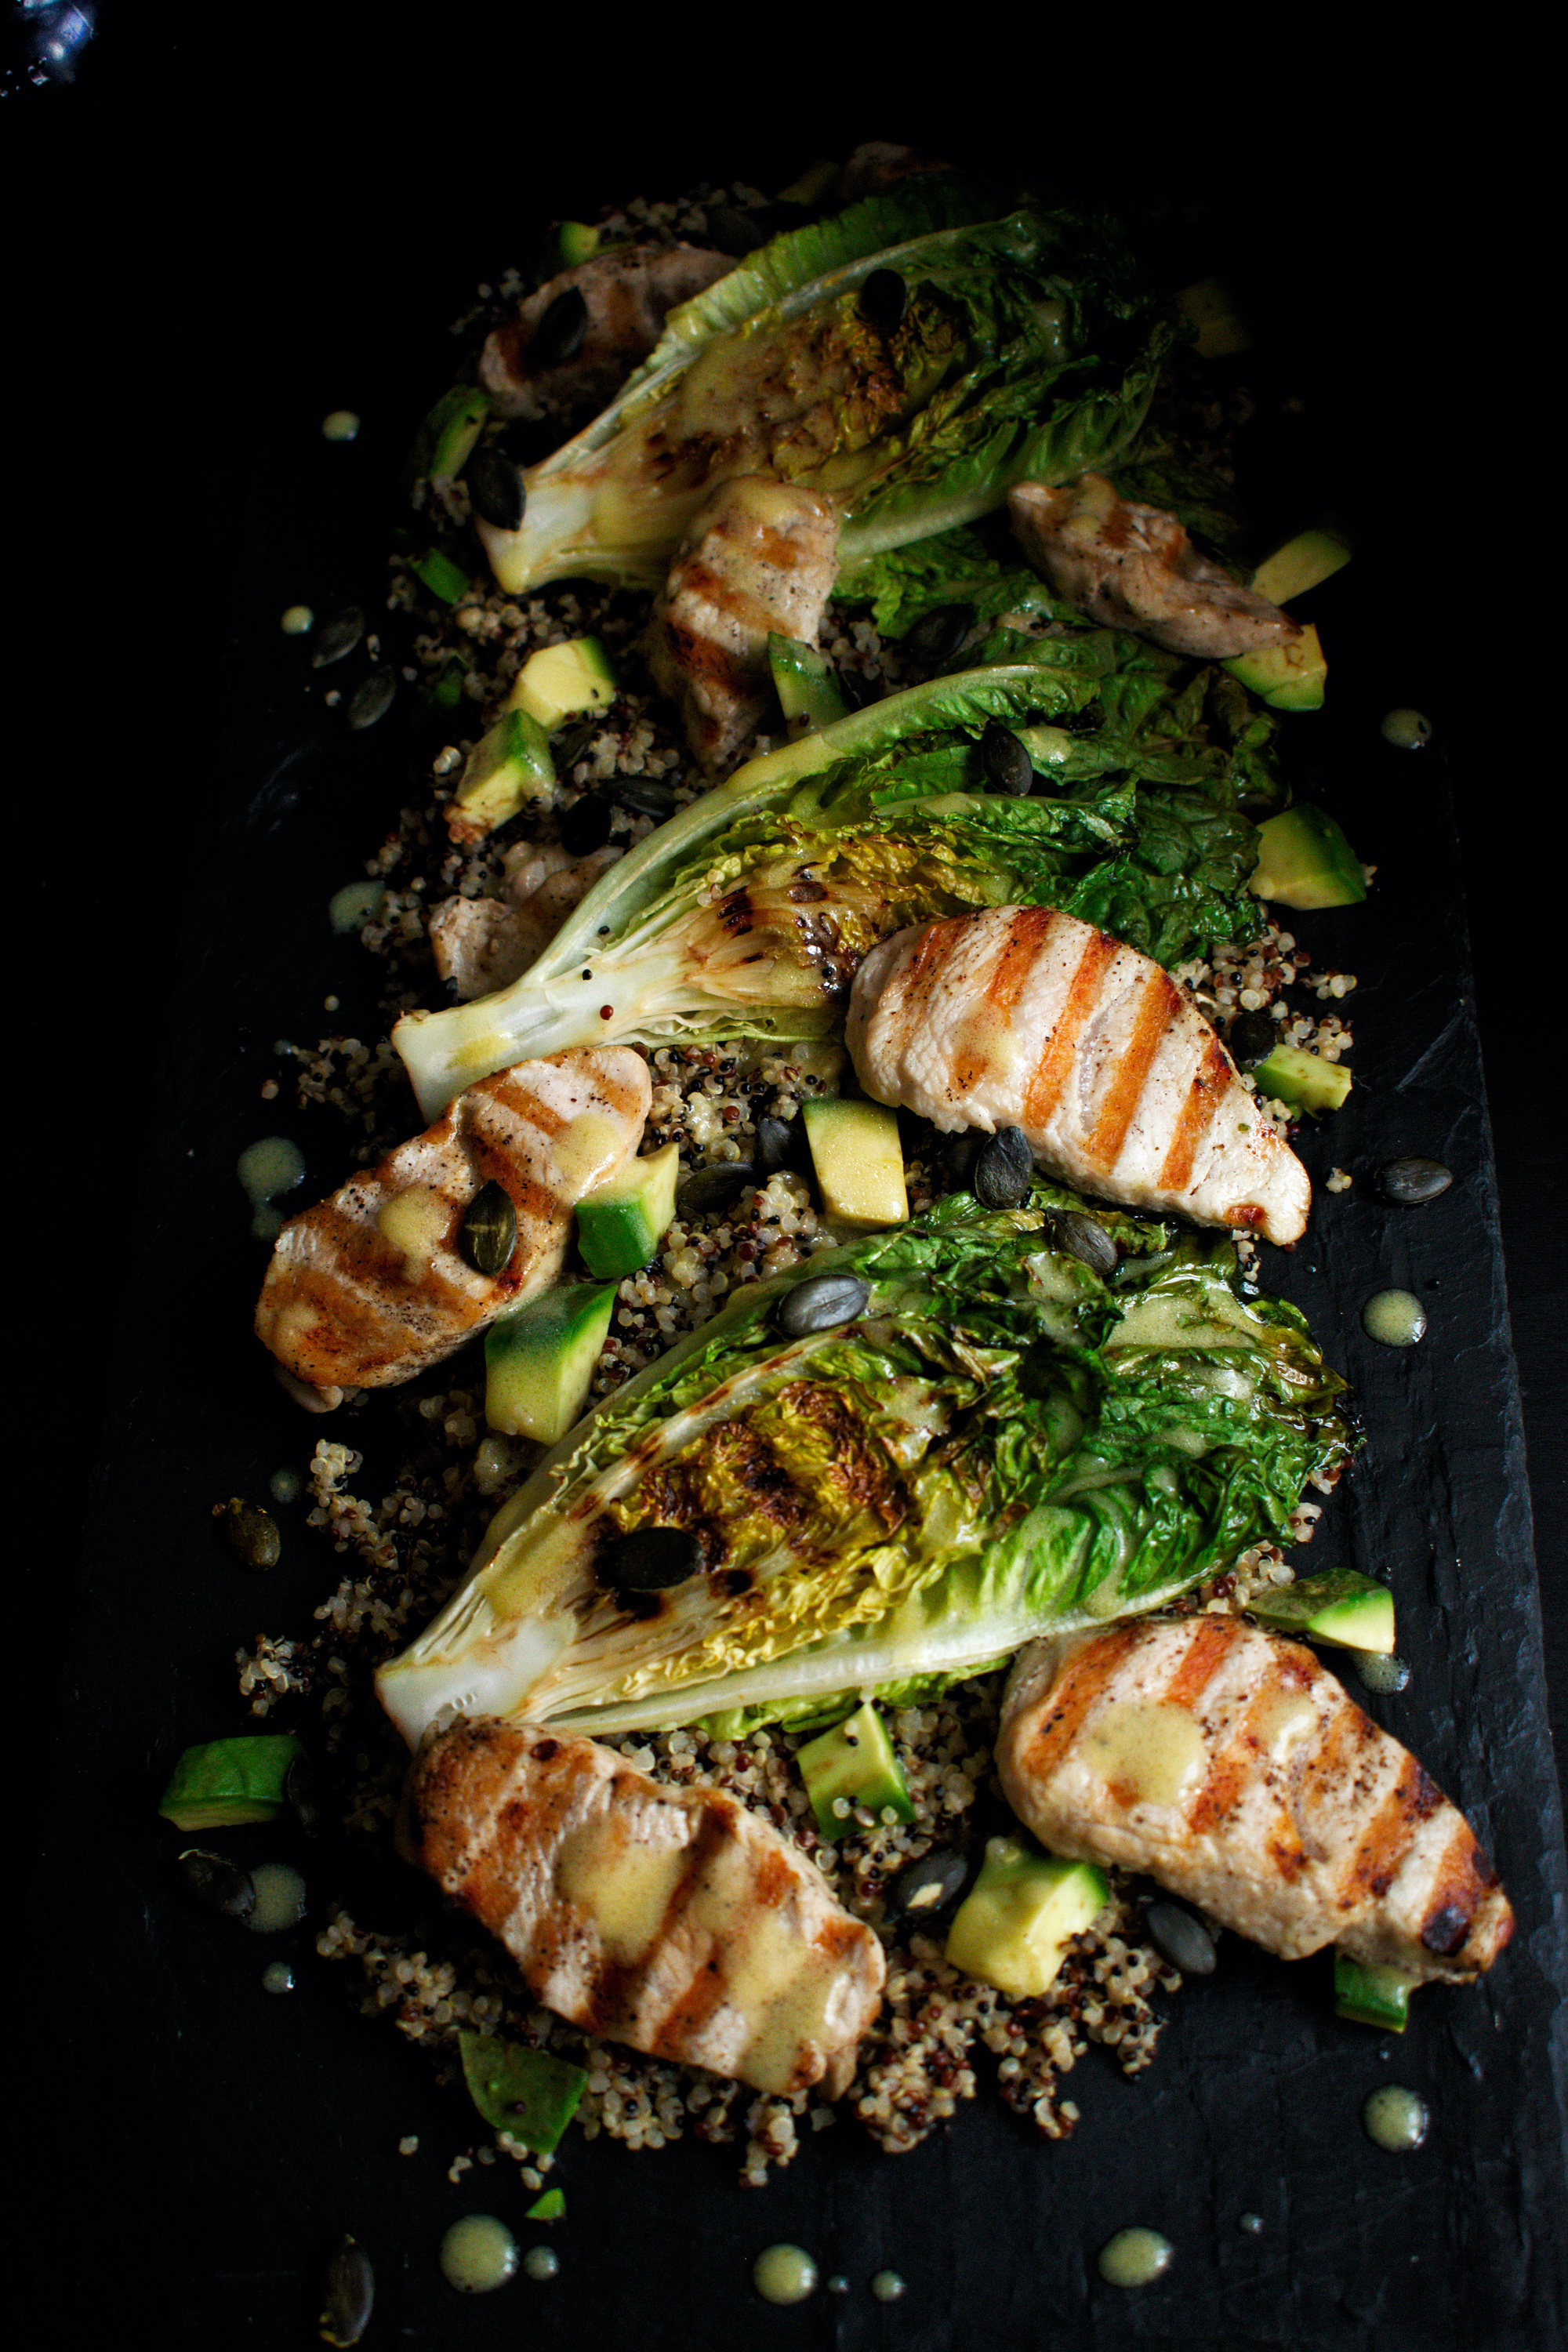 Full image of turkey, quinoa and charred lettuce salad with a lemon mustard dressing